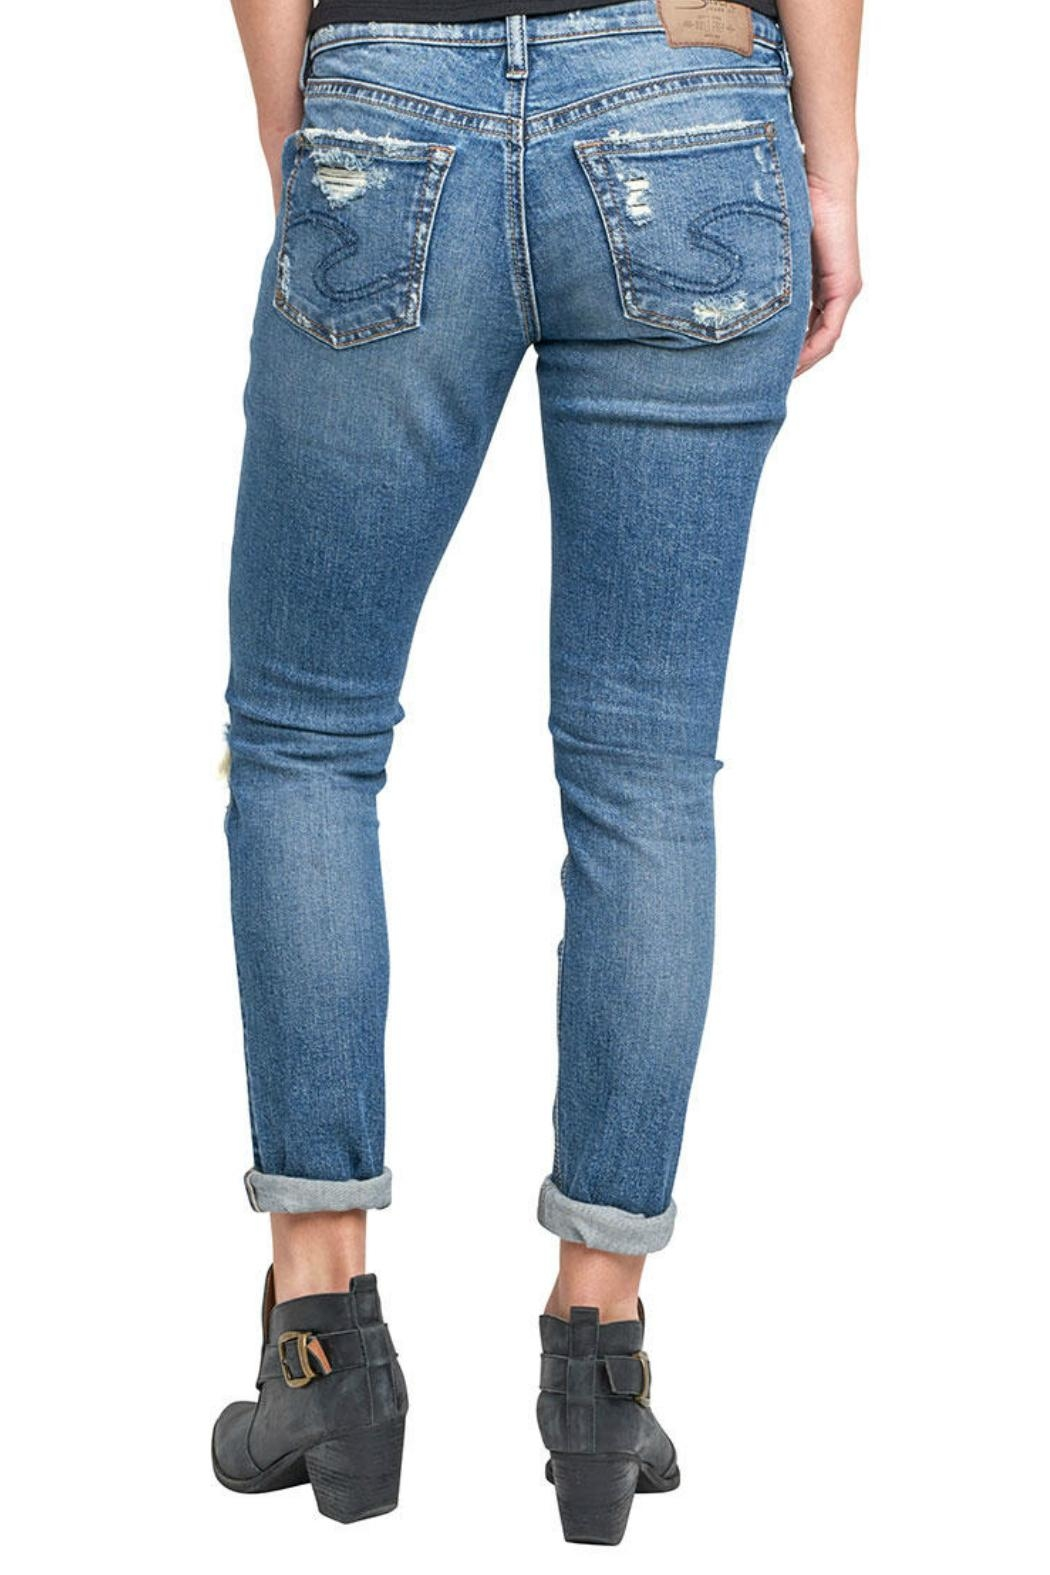 Silver Jeans Co. Kenni Girlfriend Jeans - Front Full Image